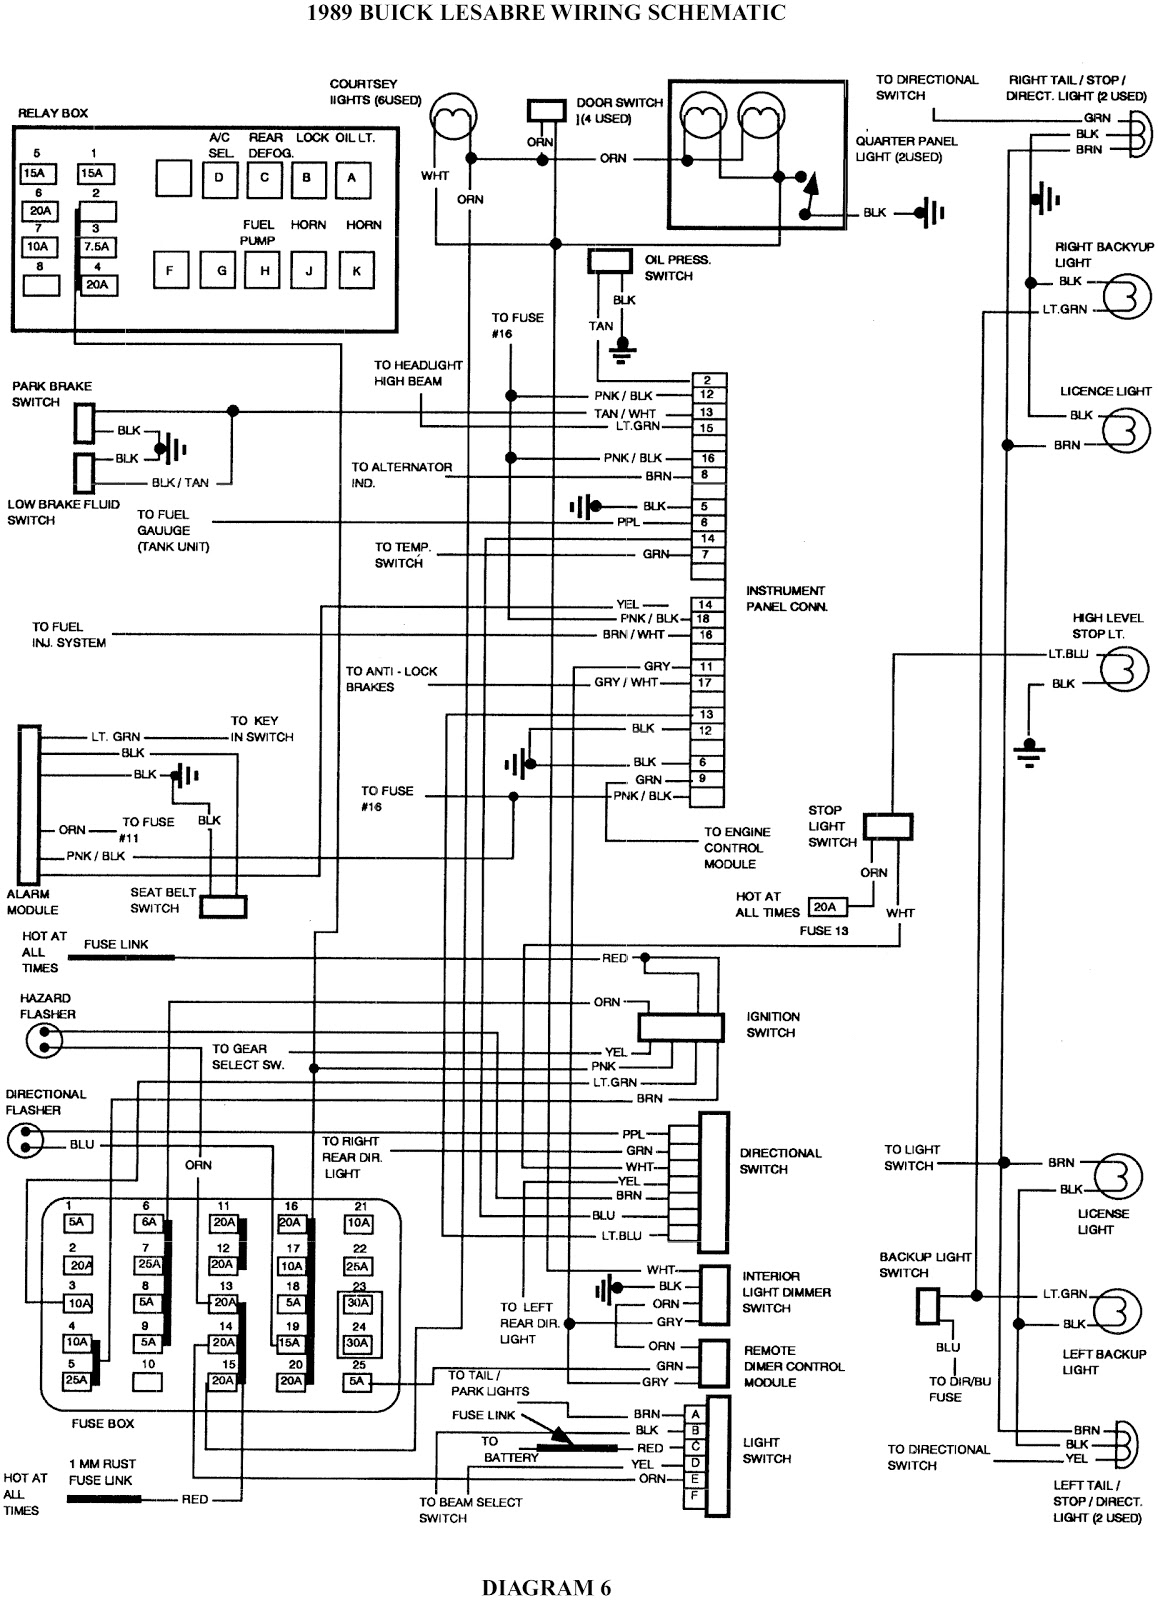 Car Electrical Wiring Chevy Impala Window Wiring Diagrams Of Chevy Wiring Diagrams furthermore Xzi Kq additionally Attachment together with Hqdefault moreover Hqdefault. on 1965 chevy pickup wiring harness